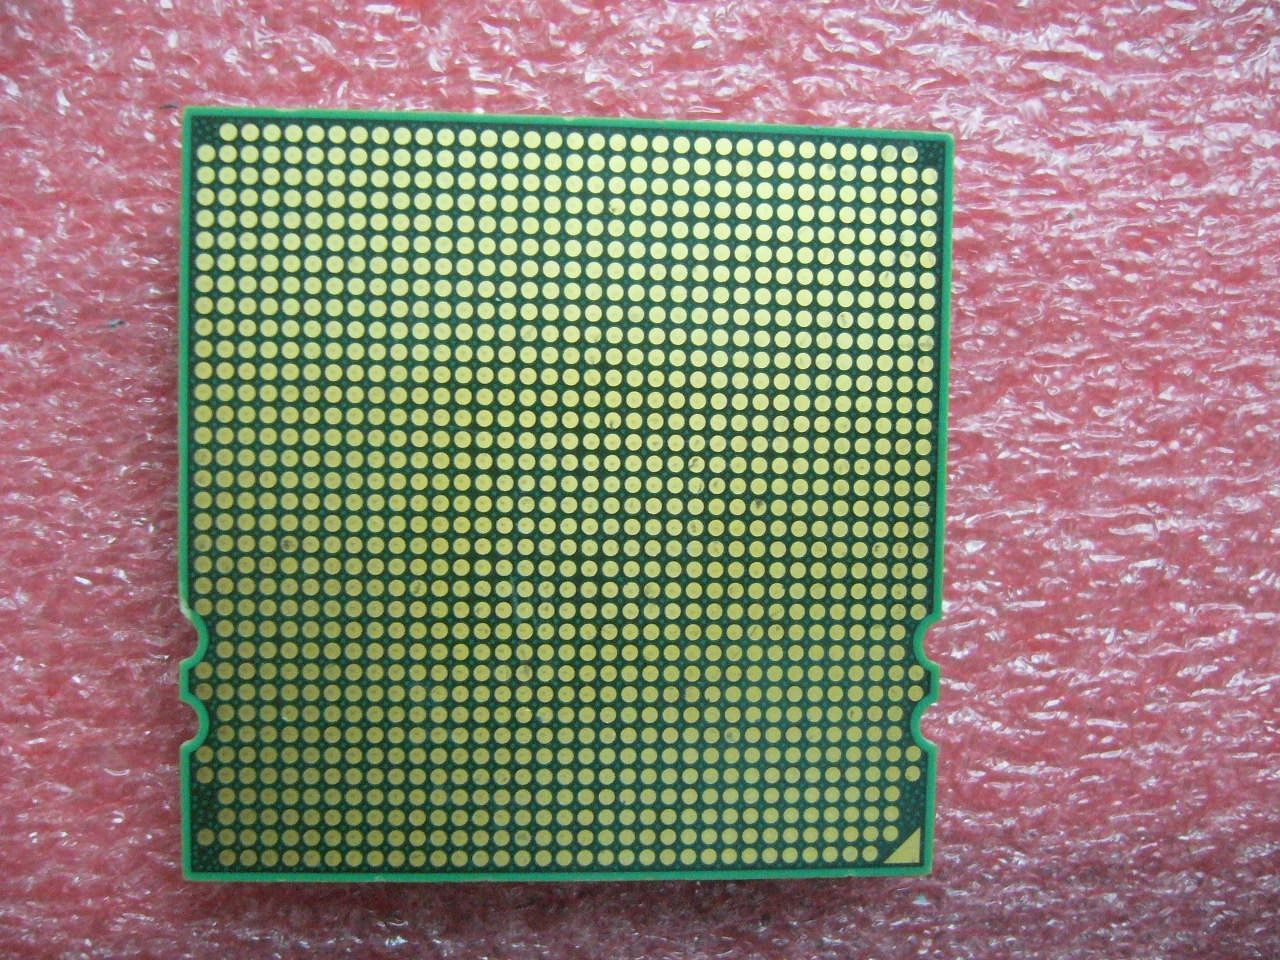 QTY 1x AMD Opteron 2373 EE Low-Power 2.1 GHz Quad-Core OS2373NAP4DGI CPU 1207